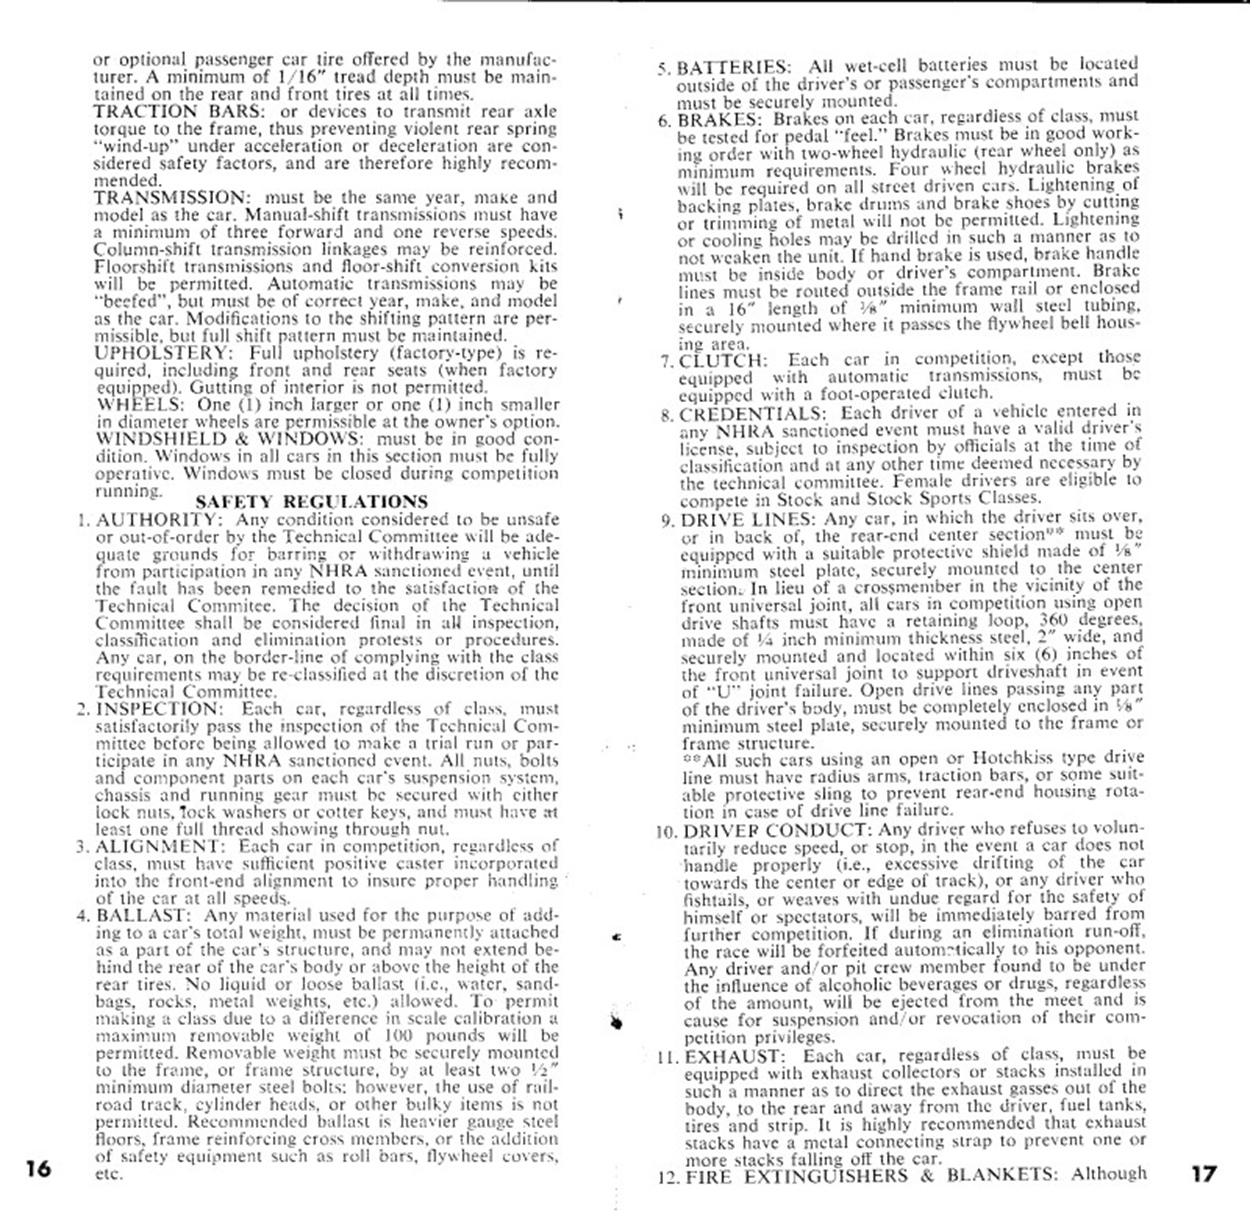 1961 Drag Rules-page10